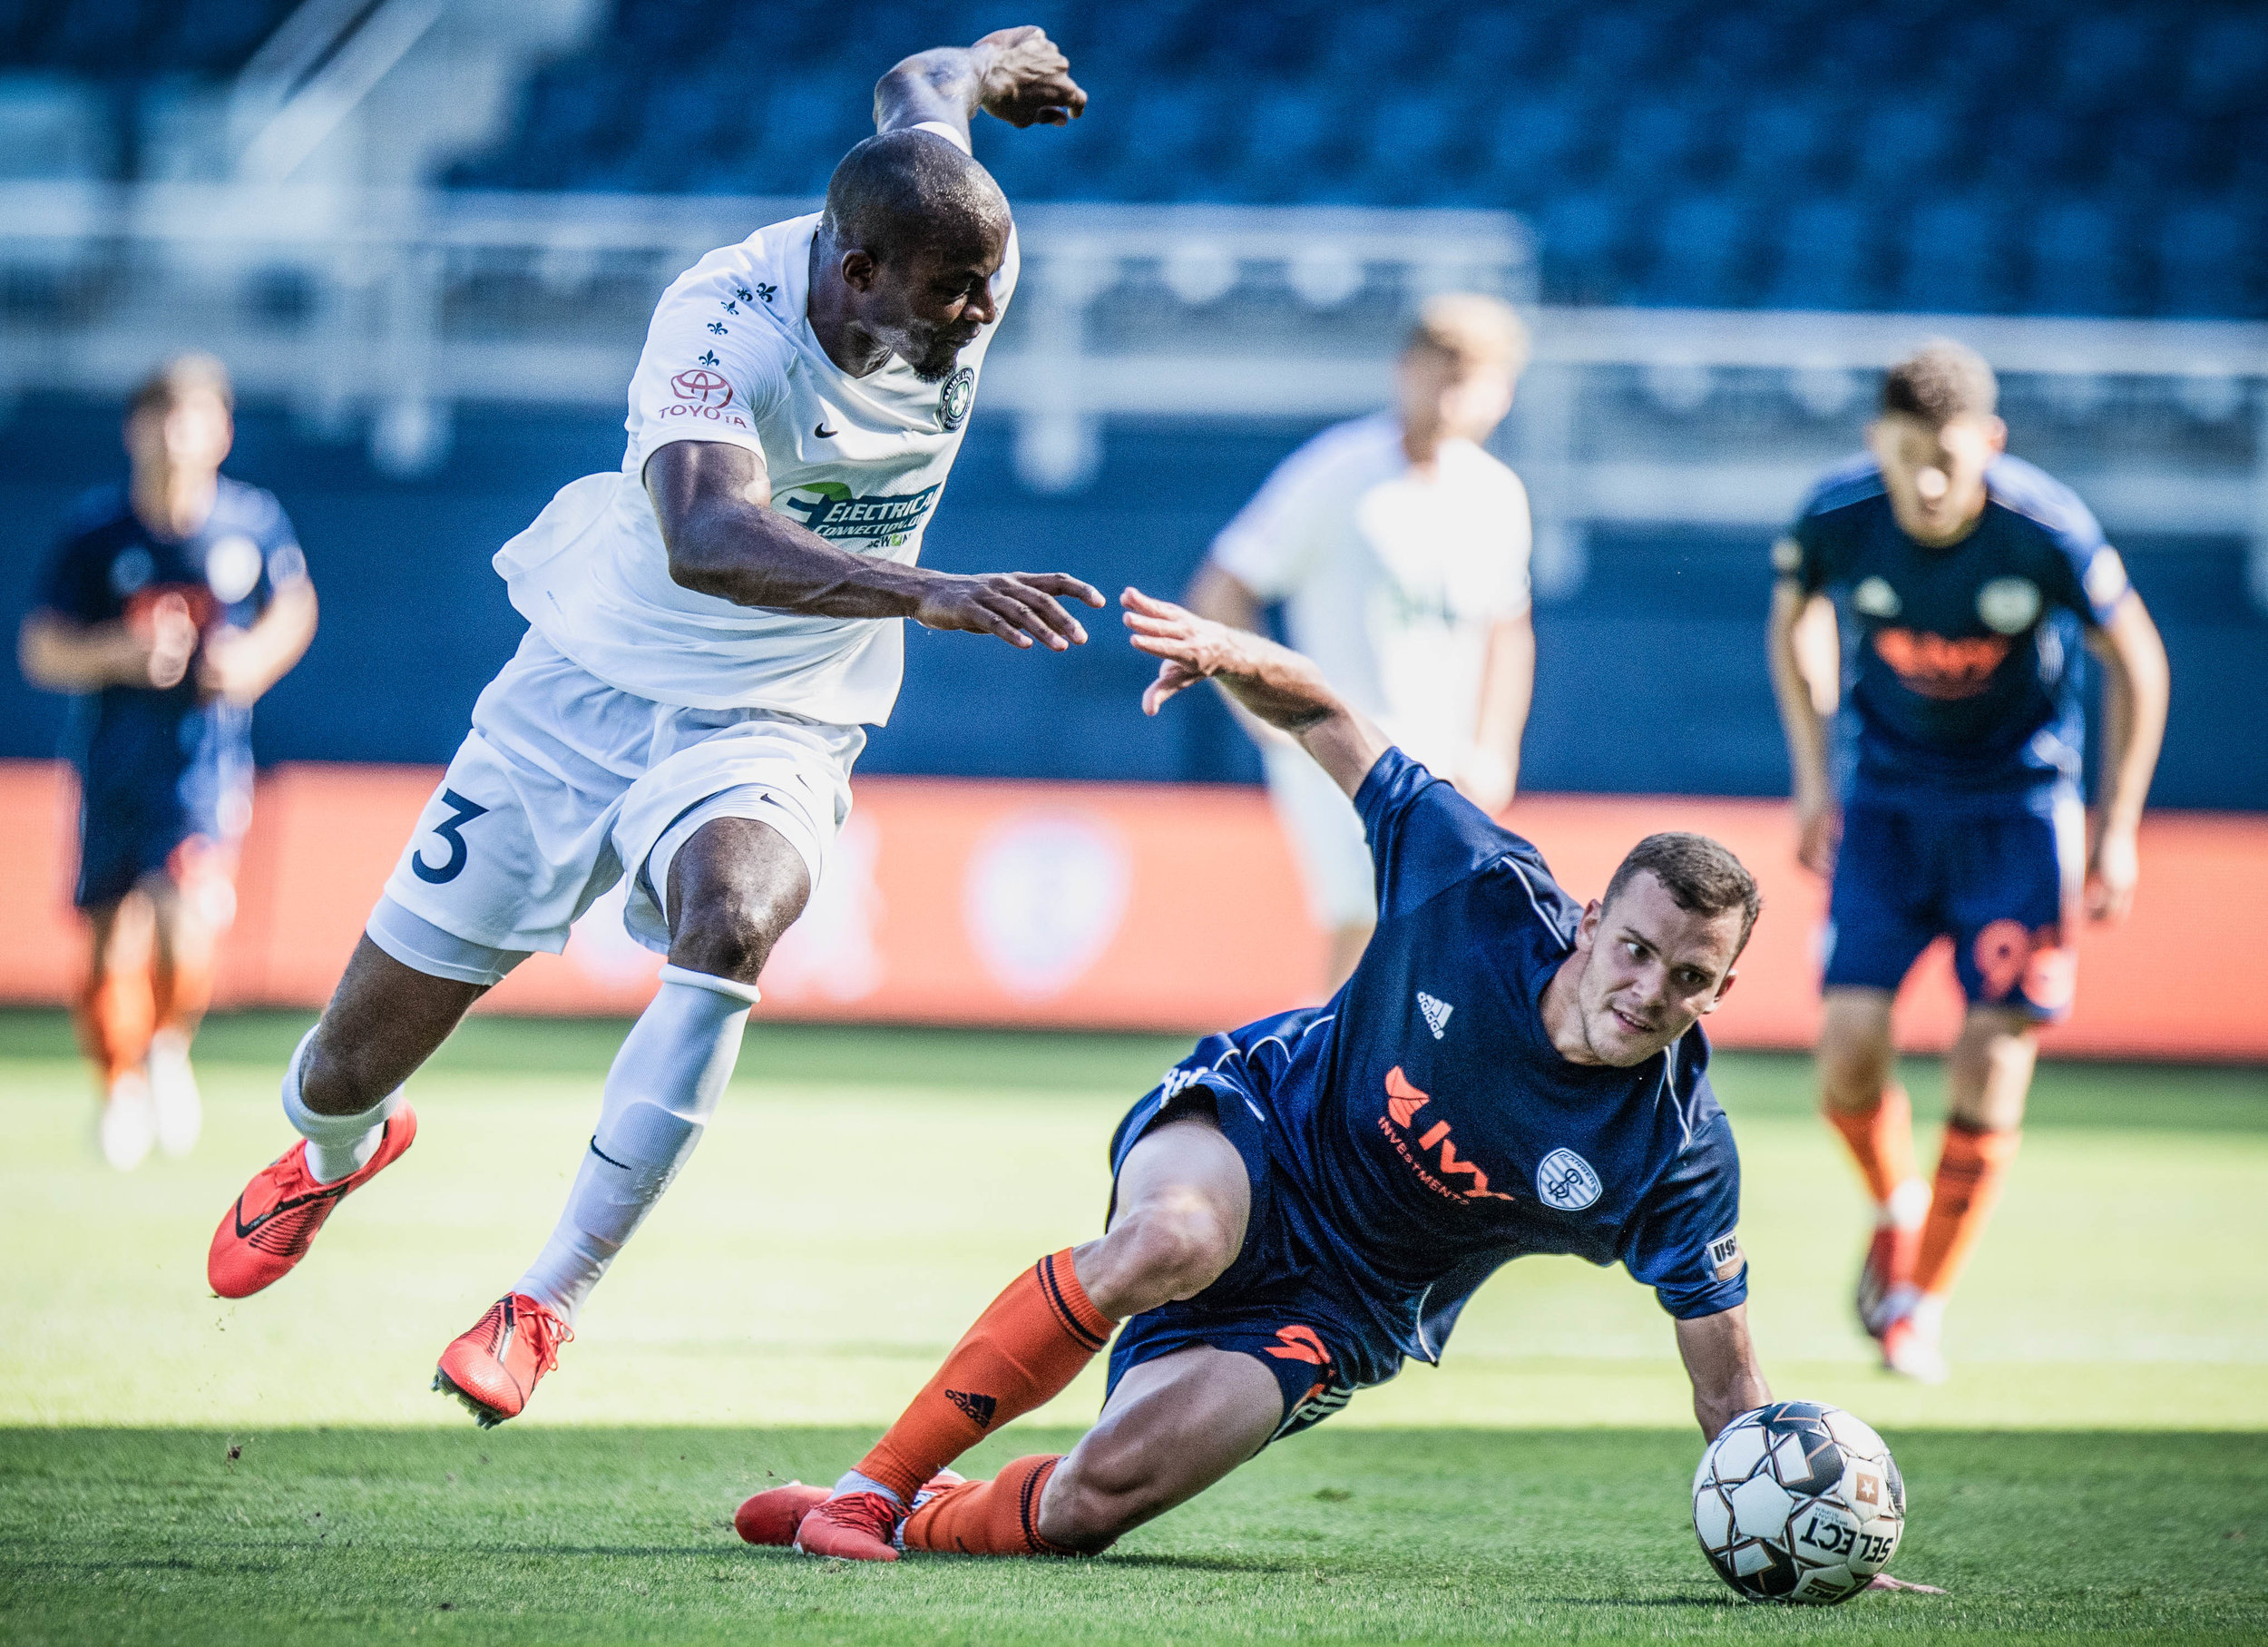 Ethan Vanacore-Decker (91) is tripped up by Phanuel Kavita (3) during the Swope Park Rangers vs. Saint Louis FC match on Sunday, June 30, 2019 at Children's Mercy Park in Kansas City, Kansas. The Rangers took down Saint Louis 2-1 breaking their 8 game winless streak.